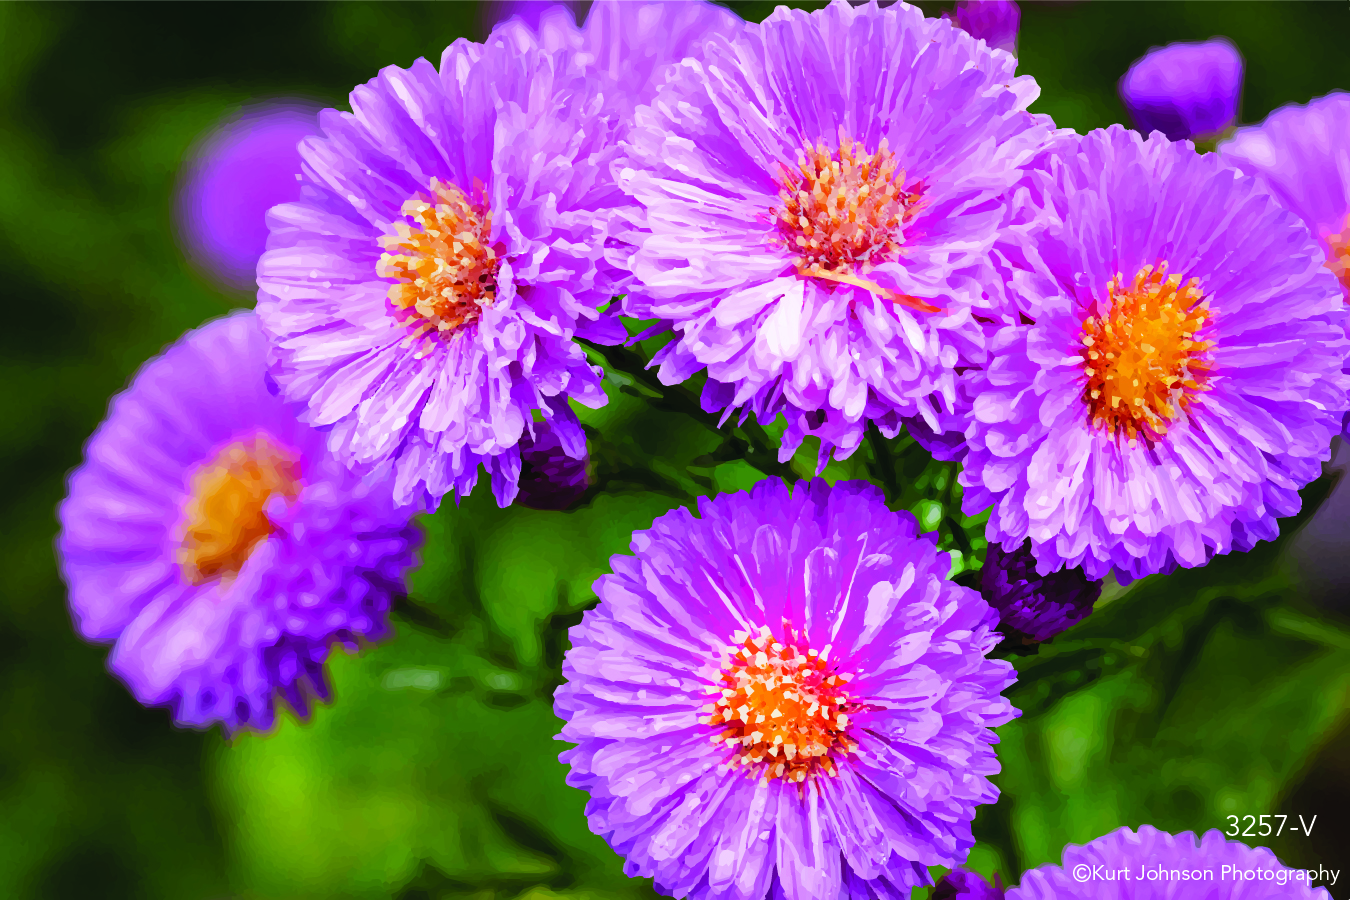 pink purple flowers field close up macro detail botanical botanicals garden vector